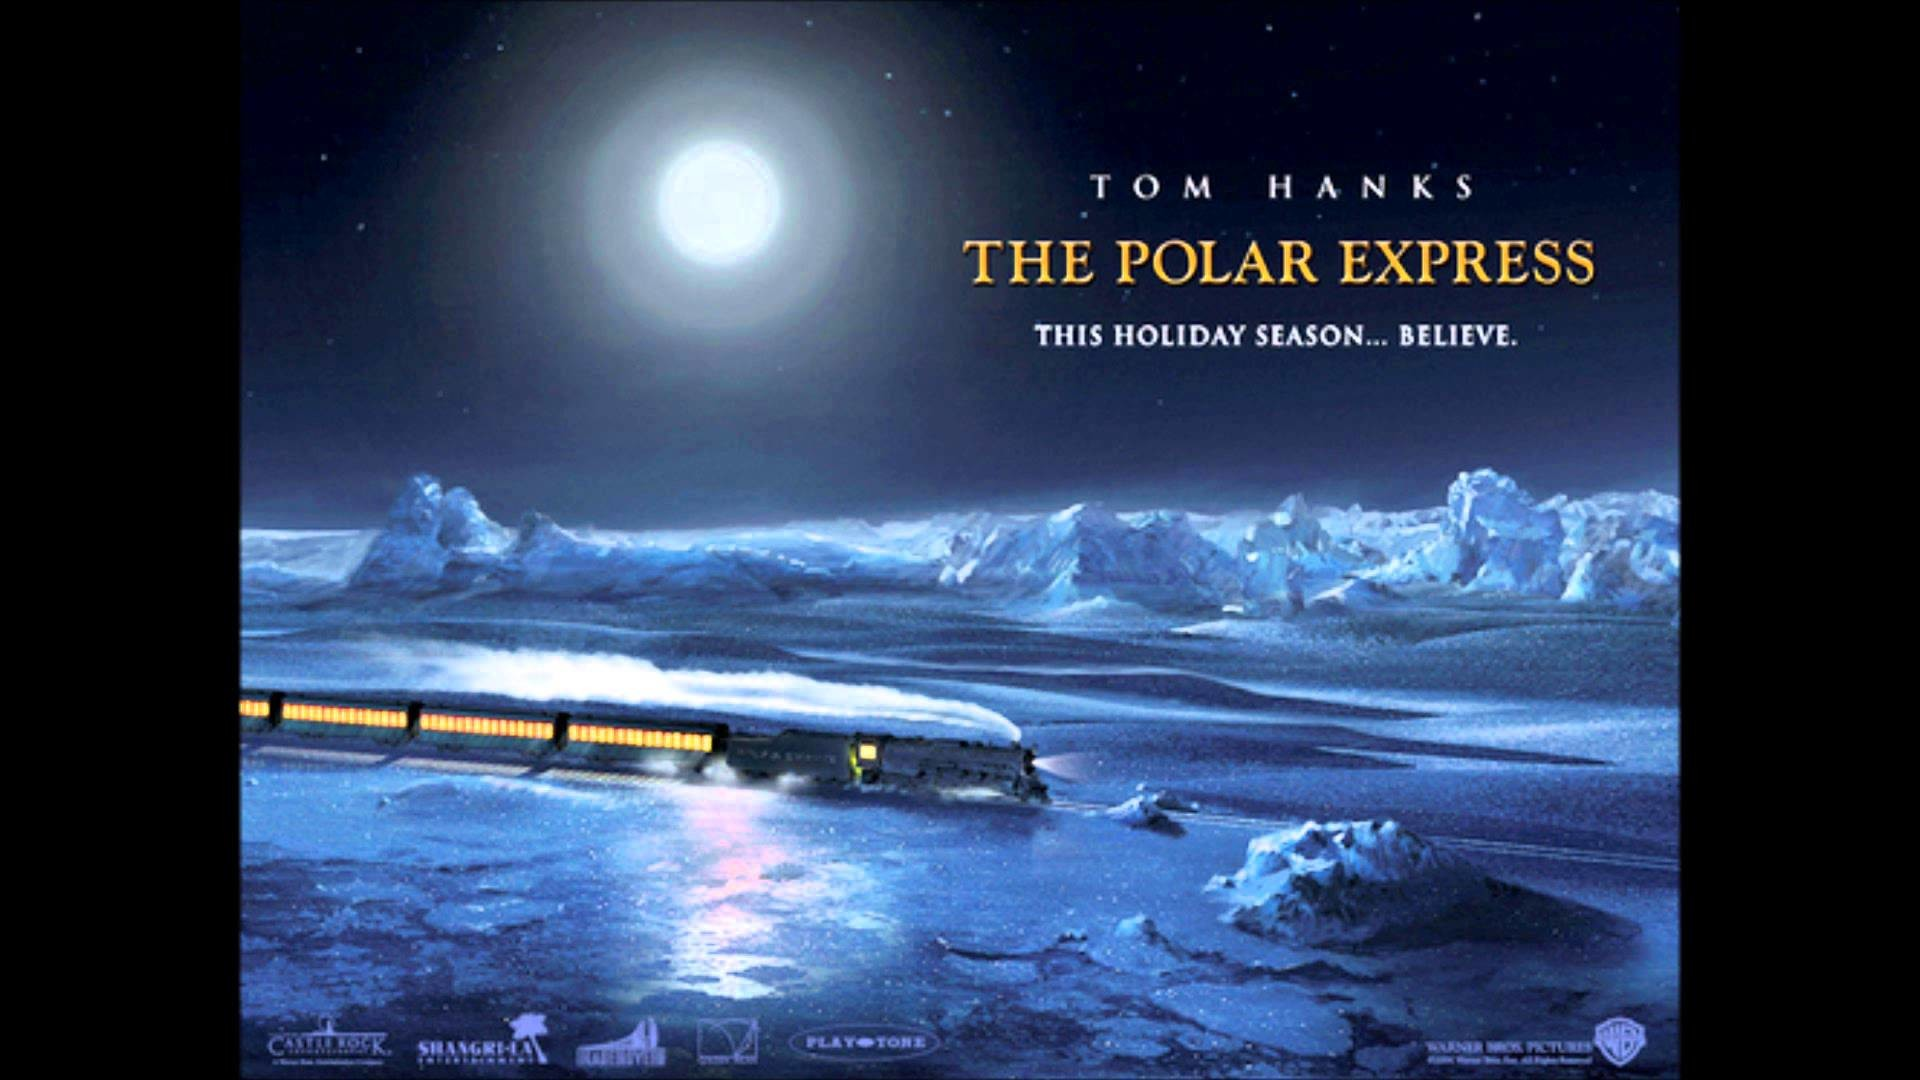 an analysis of the polar express The polar express is a book of fiction with a christmas theme the book was written and illustrated by chris van allsburg in 1985 the author was awarded the caldecott medal for children's literature in 1986.